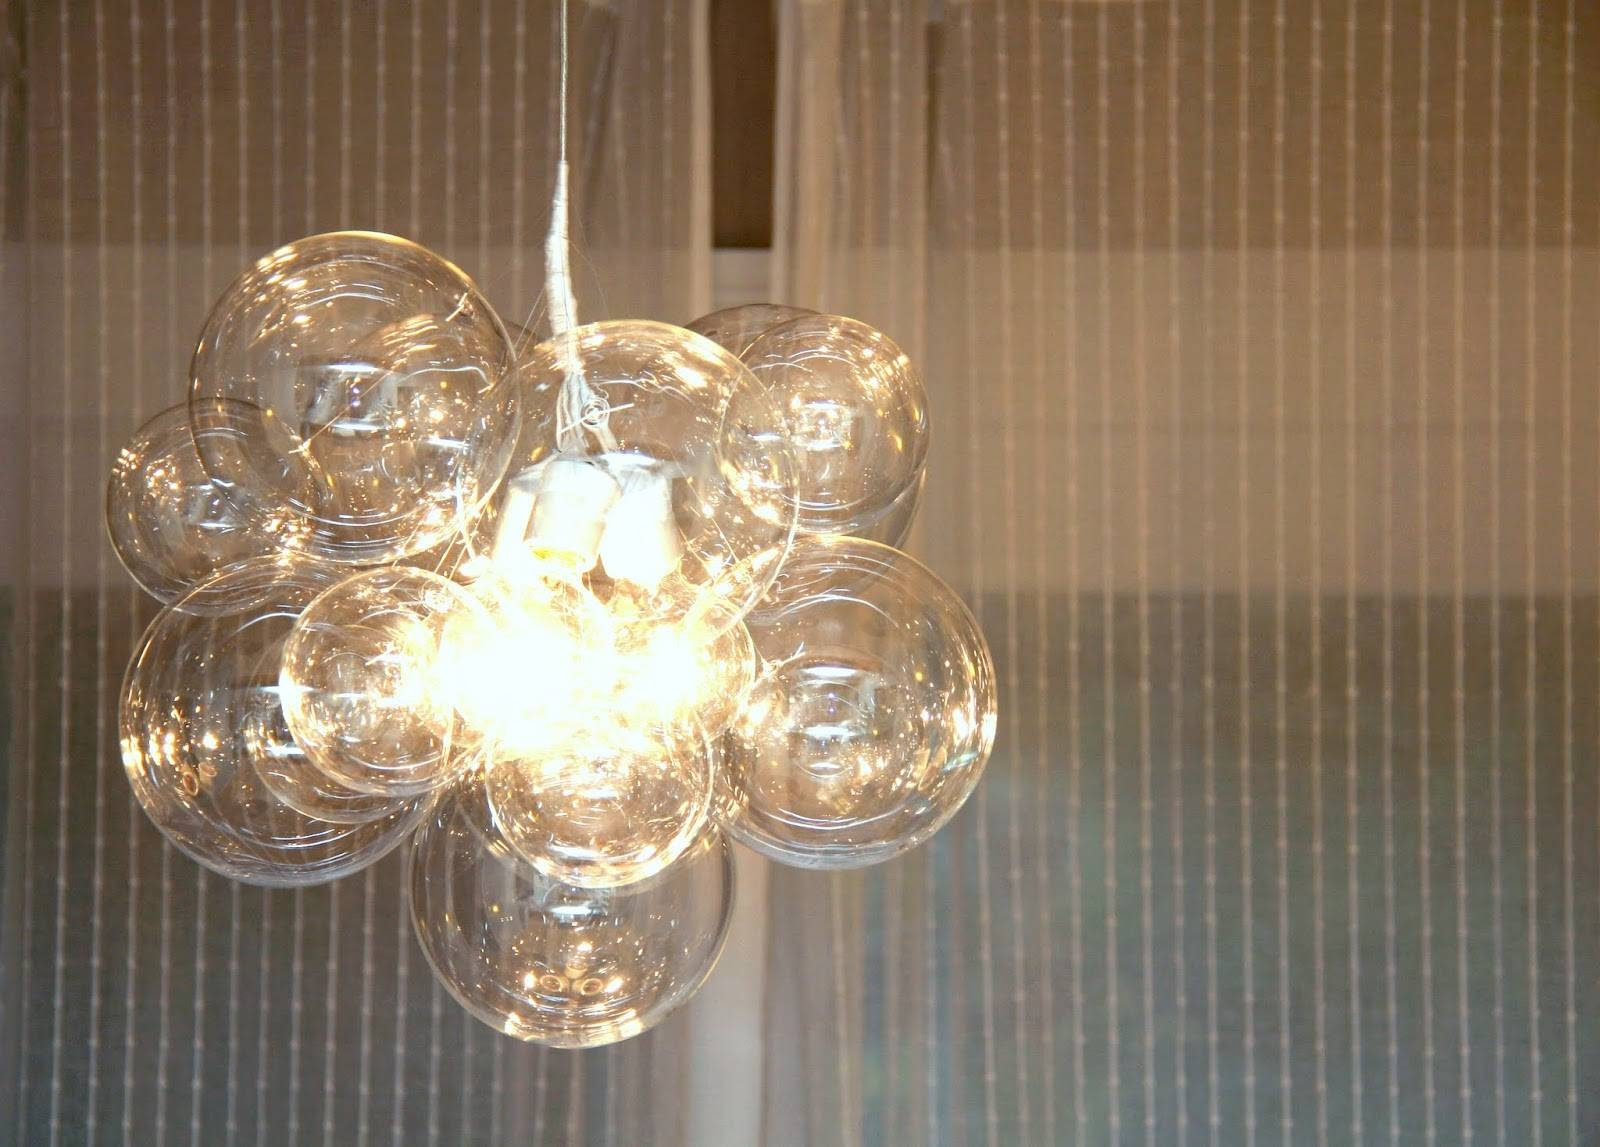 Diy Bubble Ball Chandelier ~ Swing-N-Cocoa - Diy Show Off ™ - Diy inside Cb2 Pendant Lights Fixtures (Image 8 of 15)